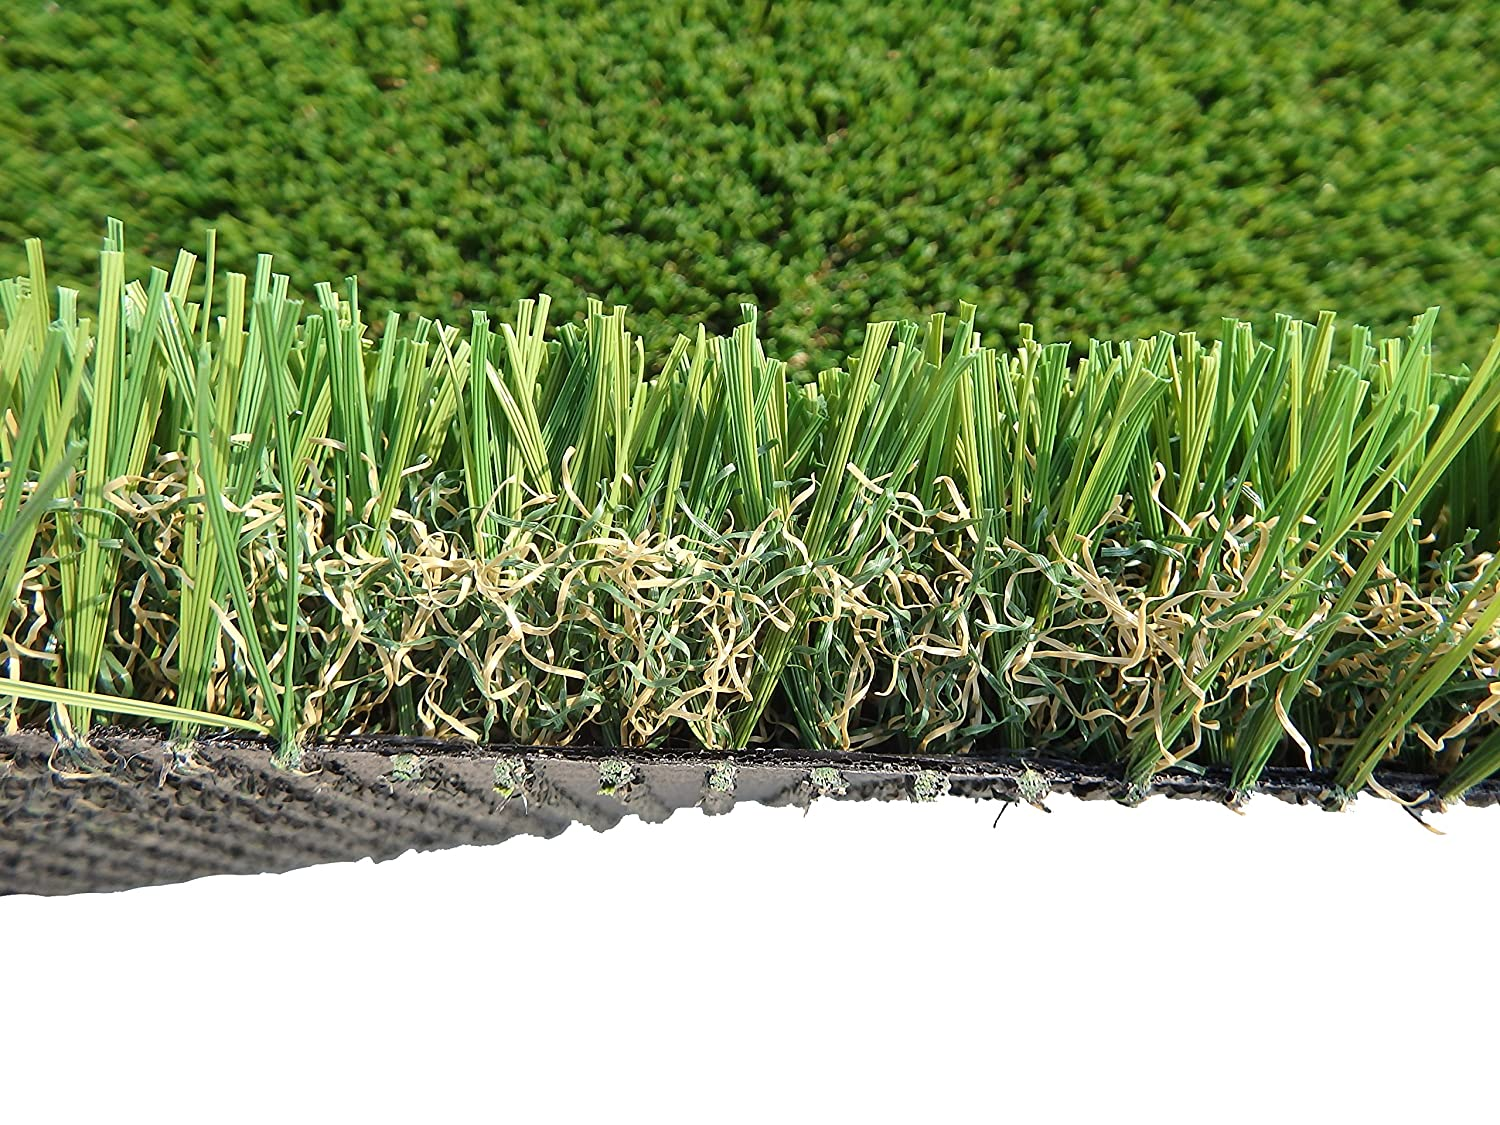 PZG Commerical Artificial Grass Patch w Drainage Holes & Rubber Backing   Extra-Heavy & Durable Turf   Lead-Free Fake Grass for Dogs or Outdoor Decor   Total Wt. 103 oz & Face Wt. 75 oz   5' x 3'